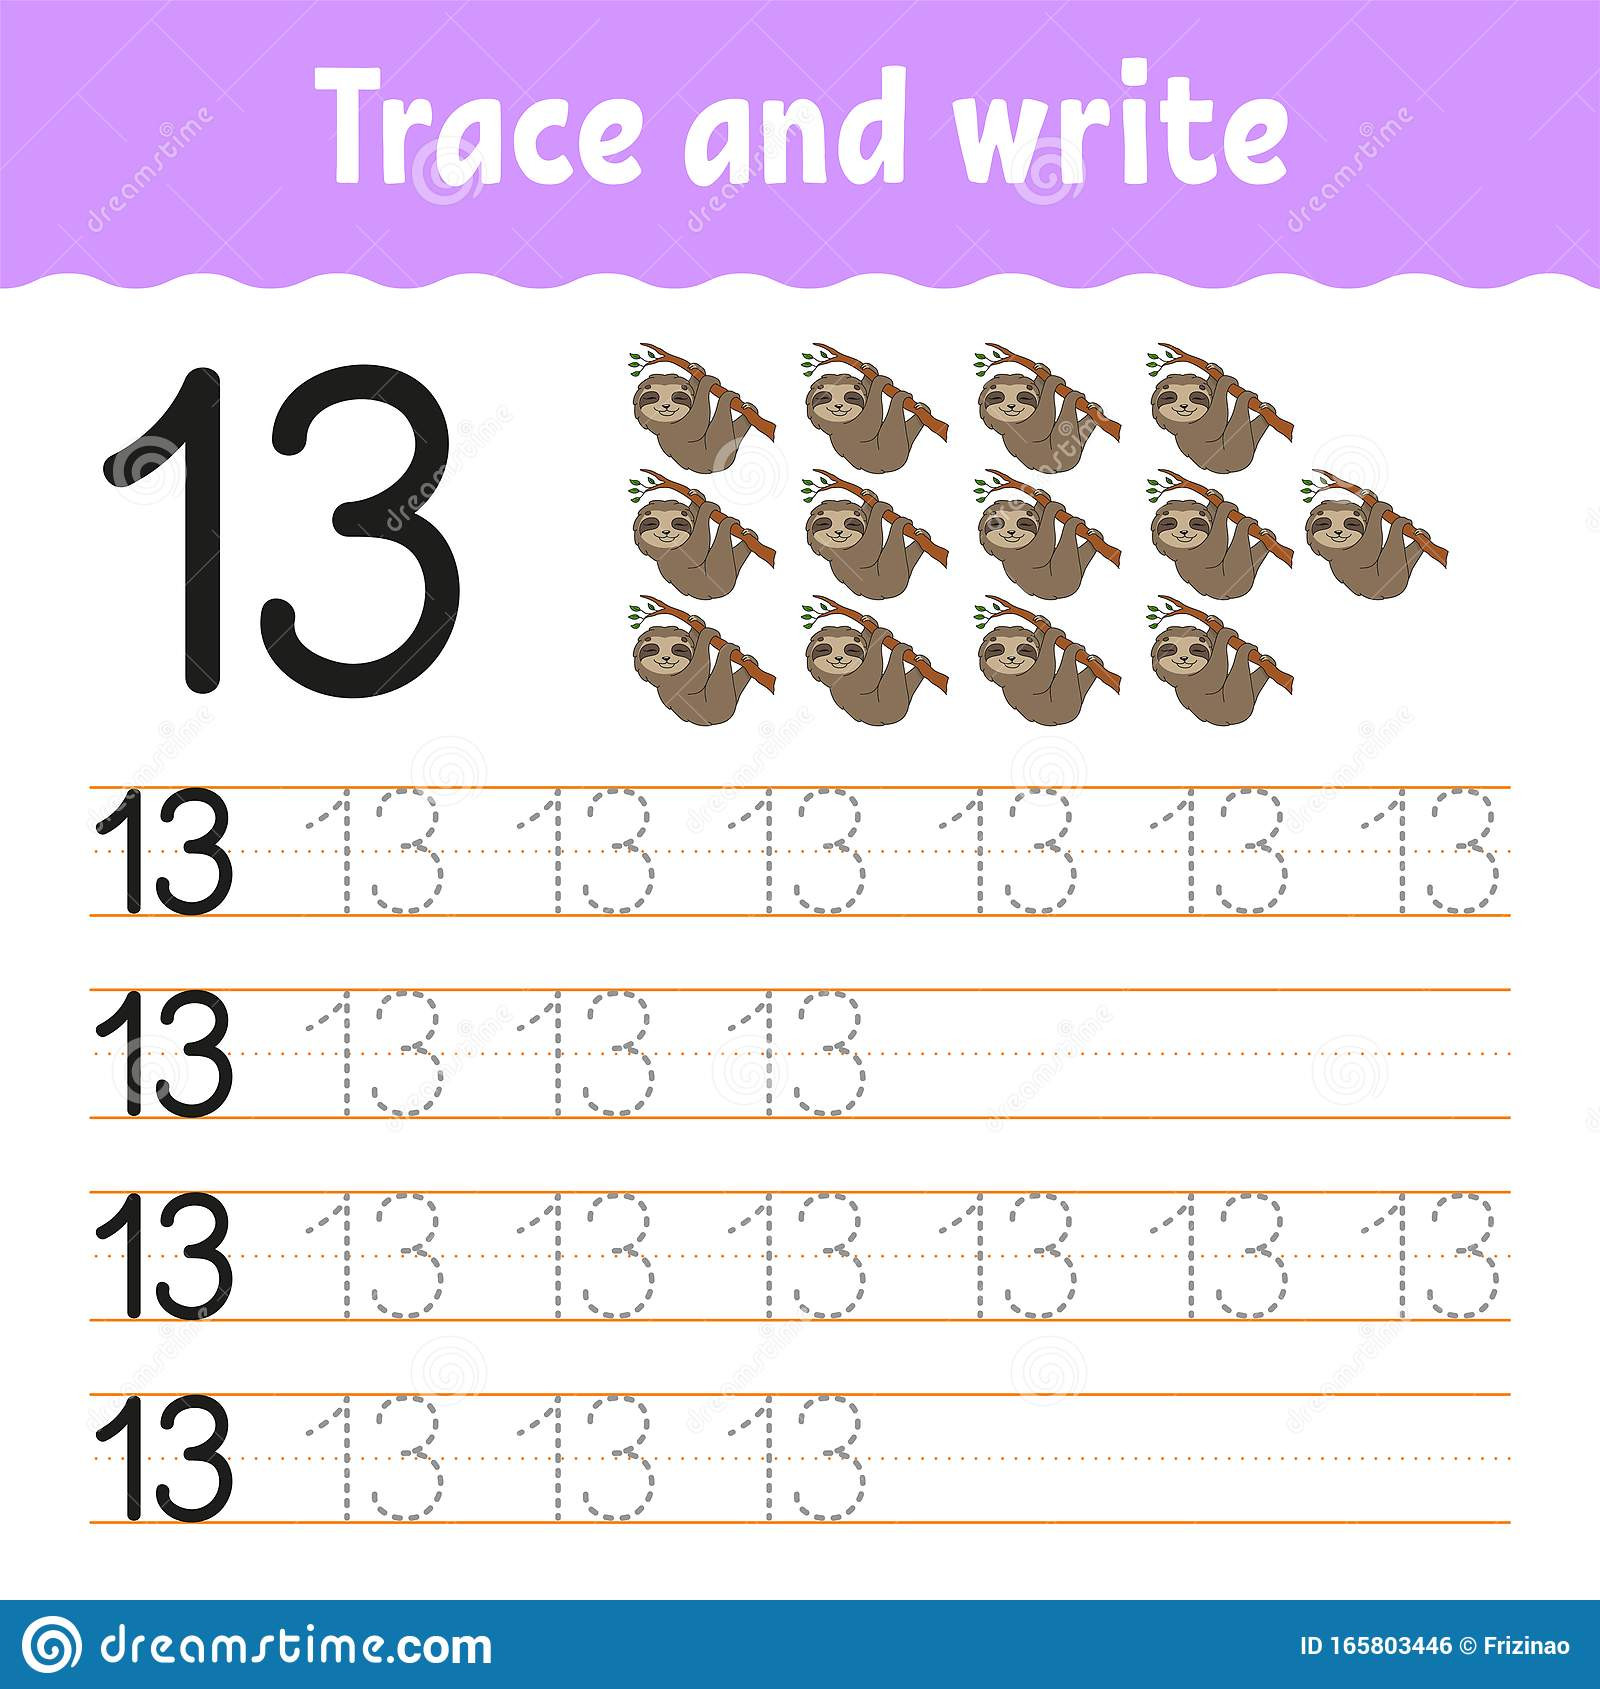 trace write handwriting practice learning numbers kids education developing worksheet activity page game toddlers